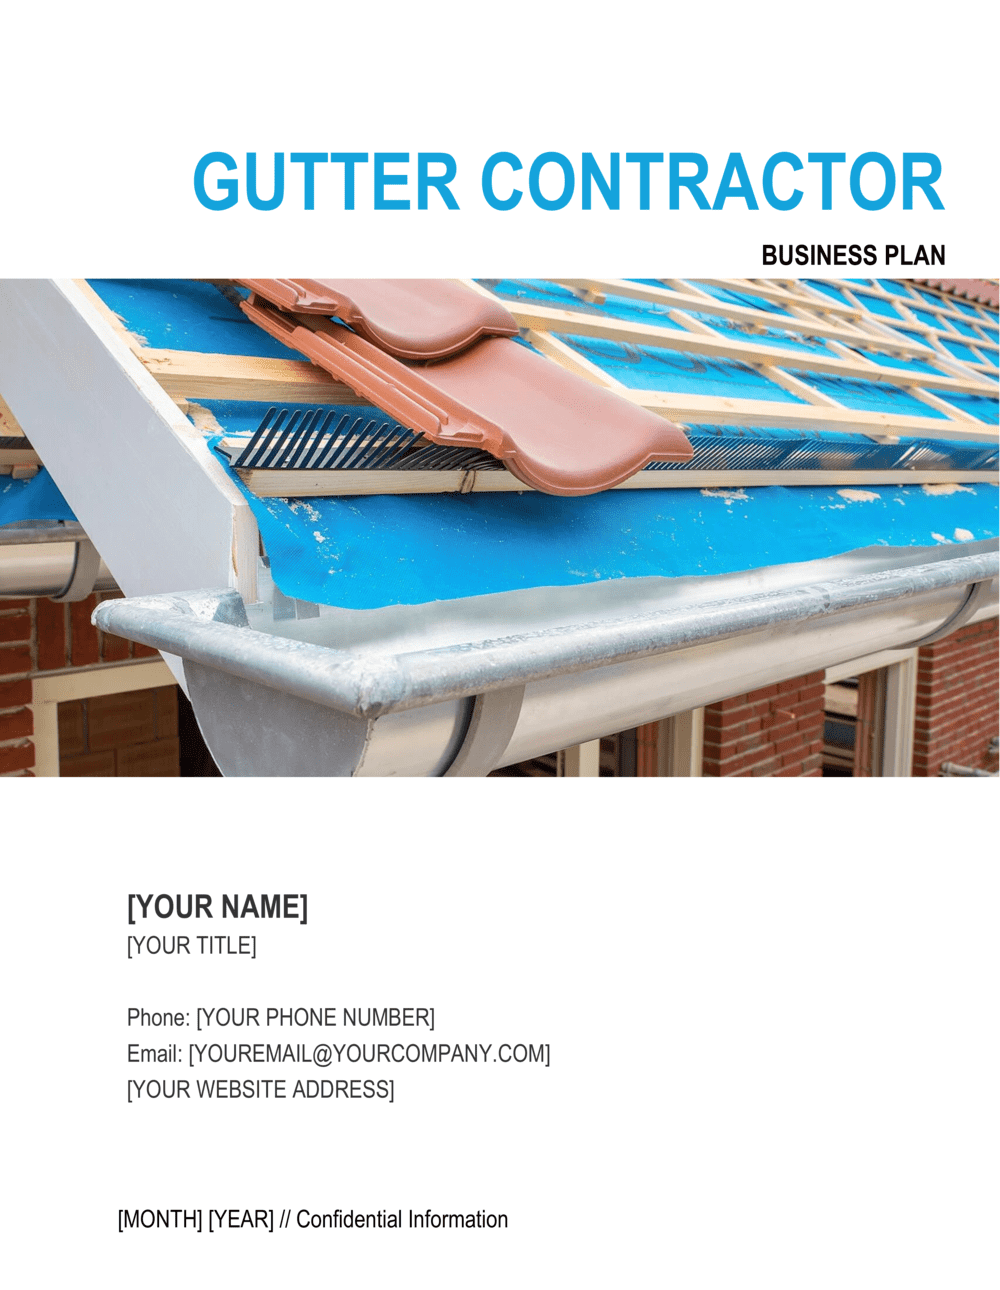 Business-in-a-Box's Gutter Contractor Business Plan Template